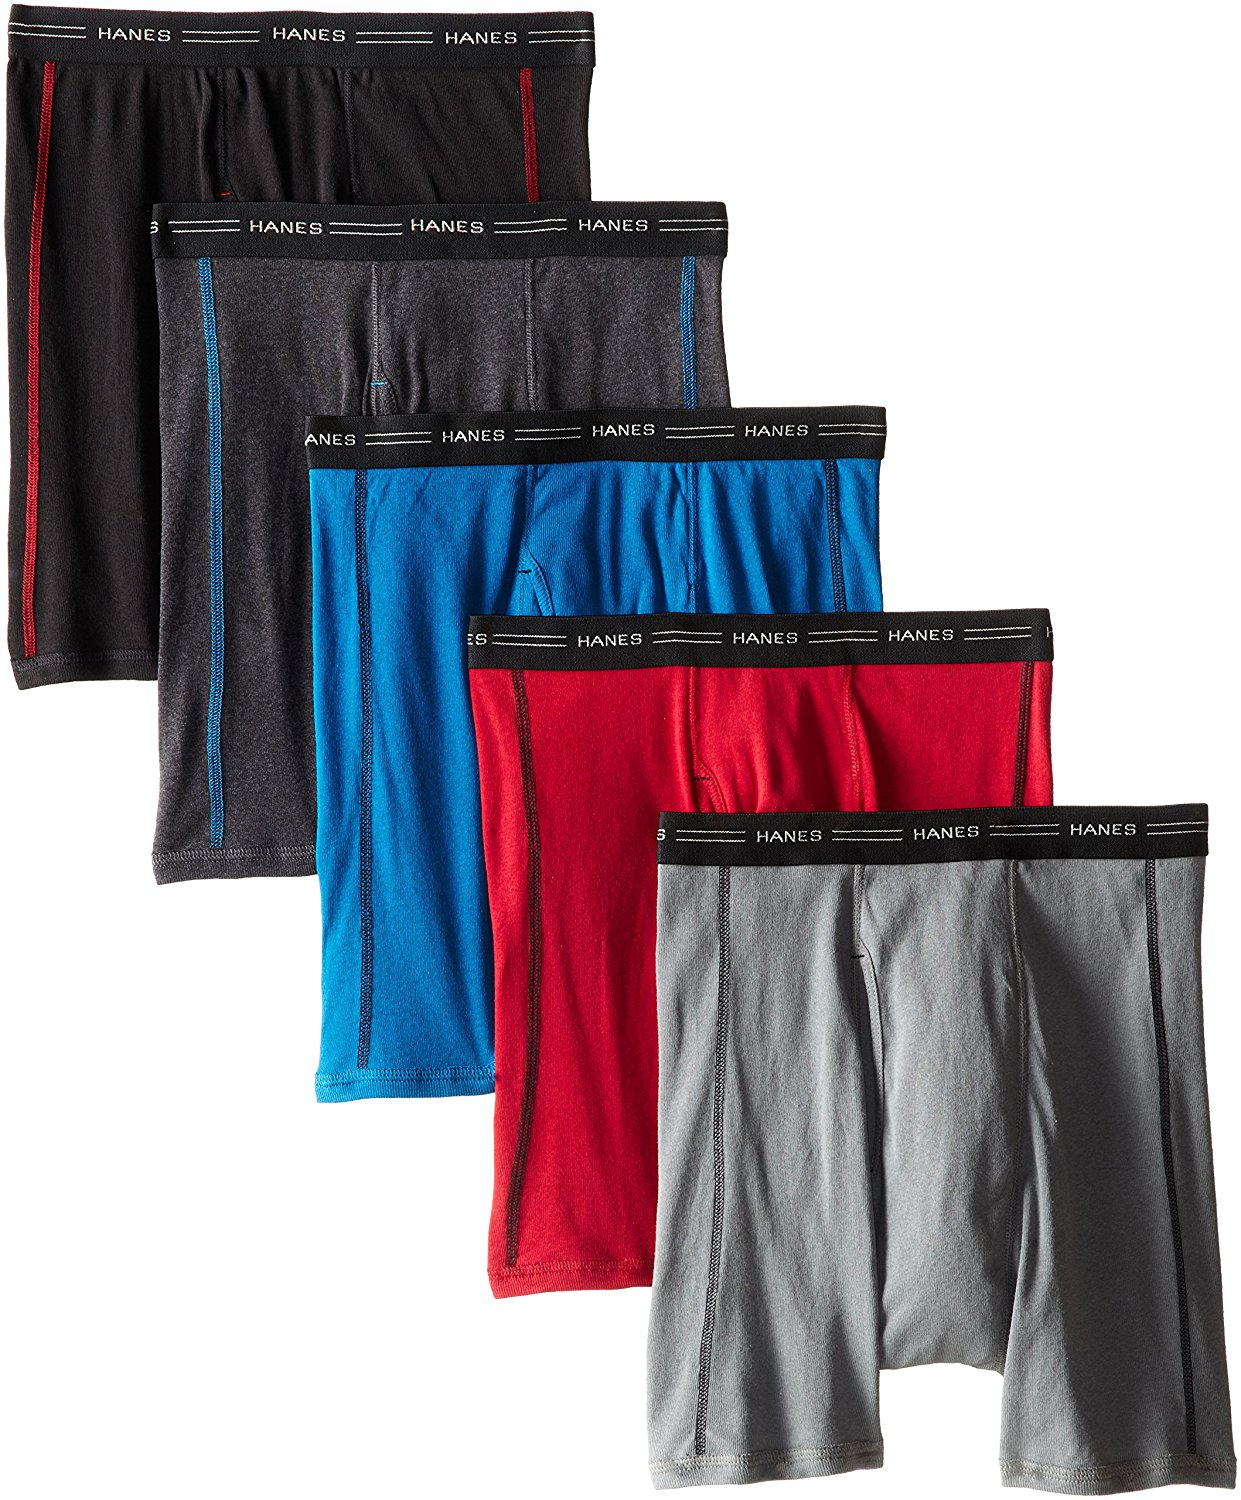 byHanes Hanes Men's Sports Inspired Boxer Brief 5-Pack (Assorted Color, XX-Large)